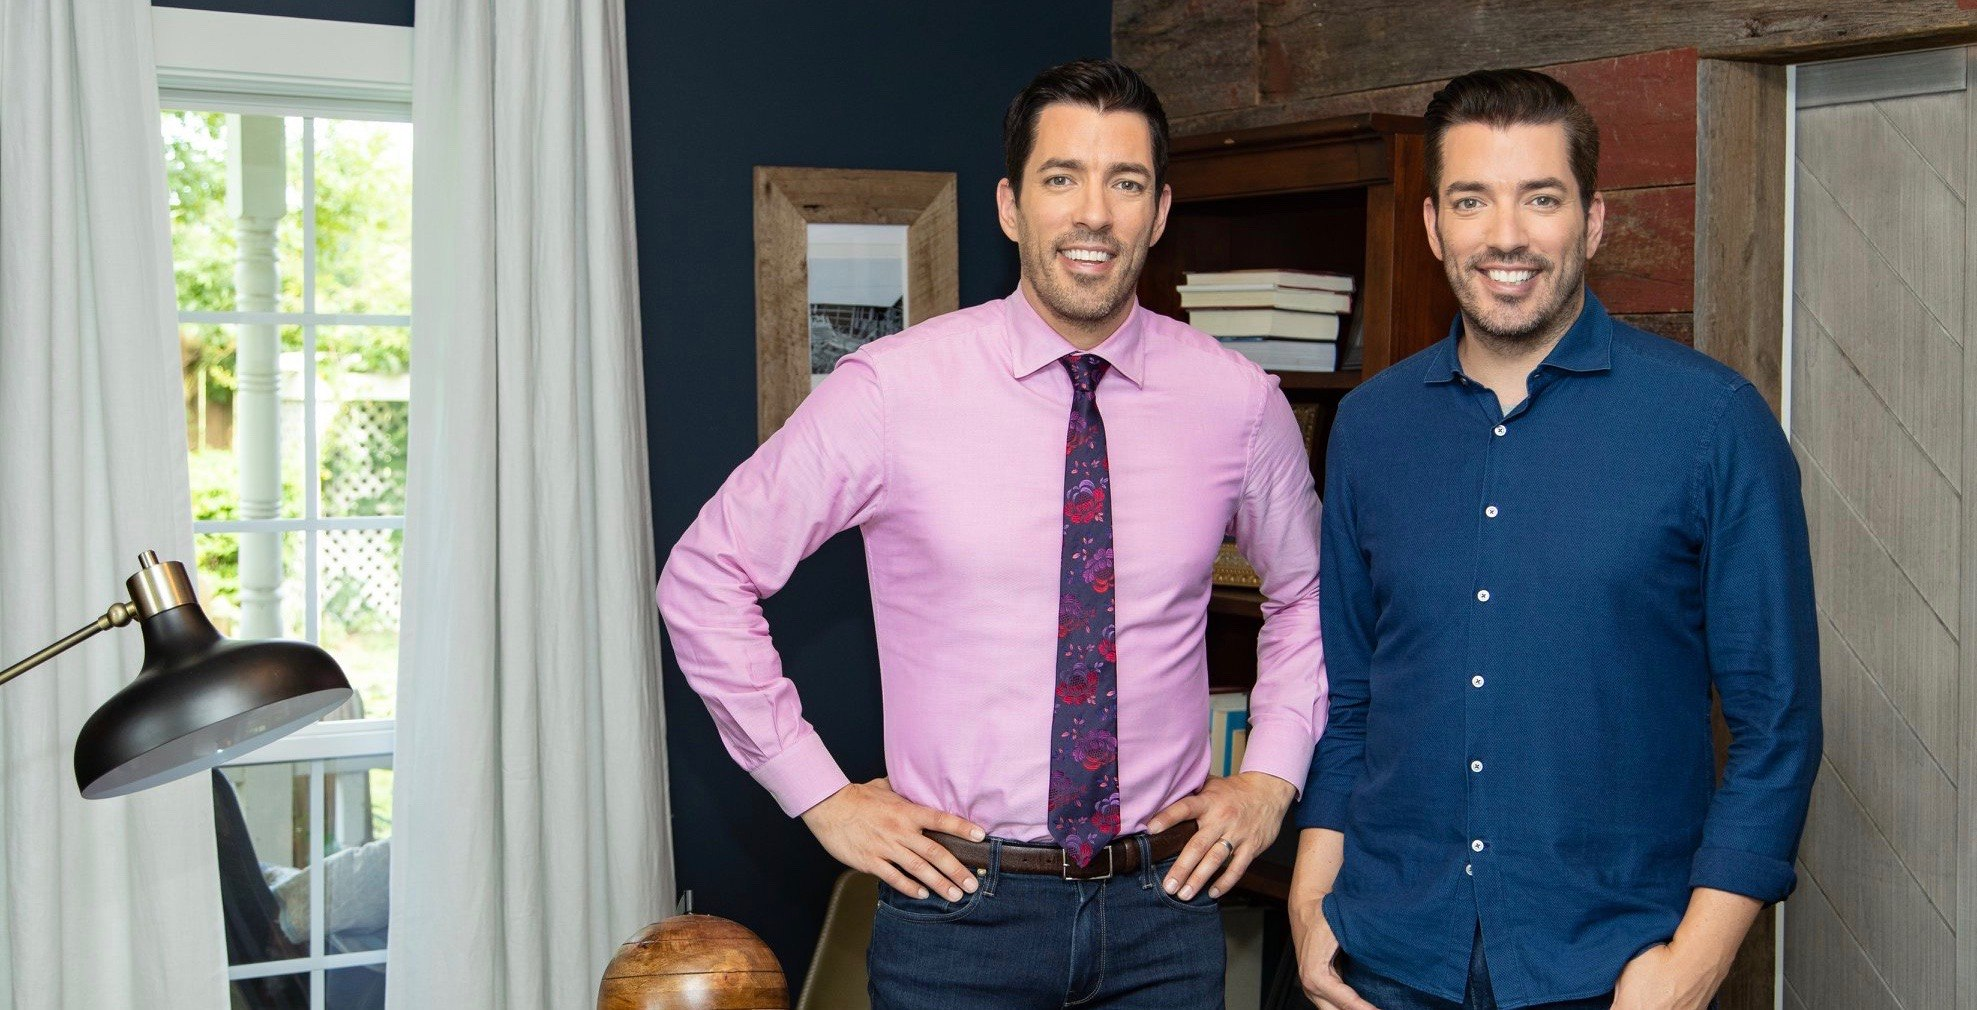 The Property Brothers just launched an all-in-one home platform in Canada